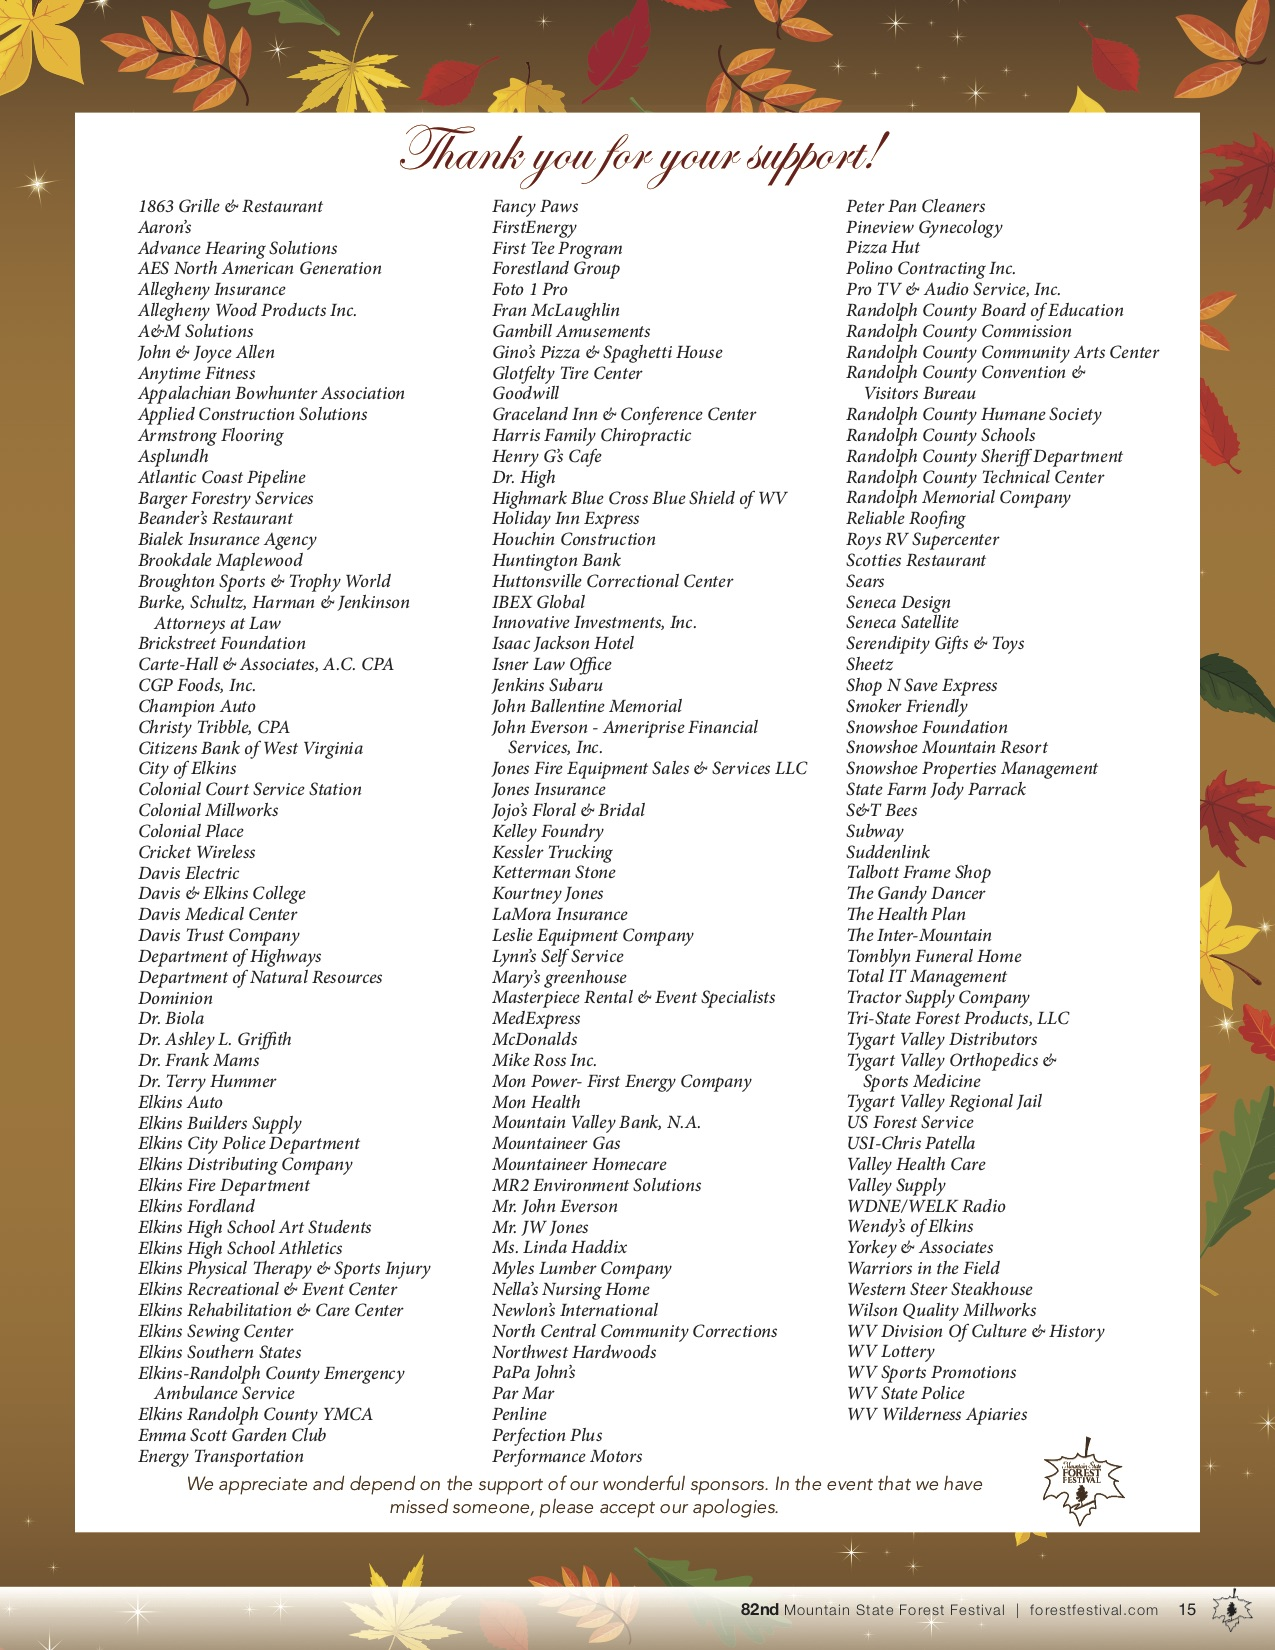 82nd Mountain State Forest Festival Sponsors